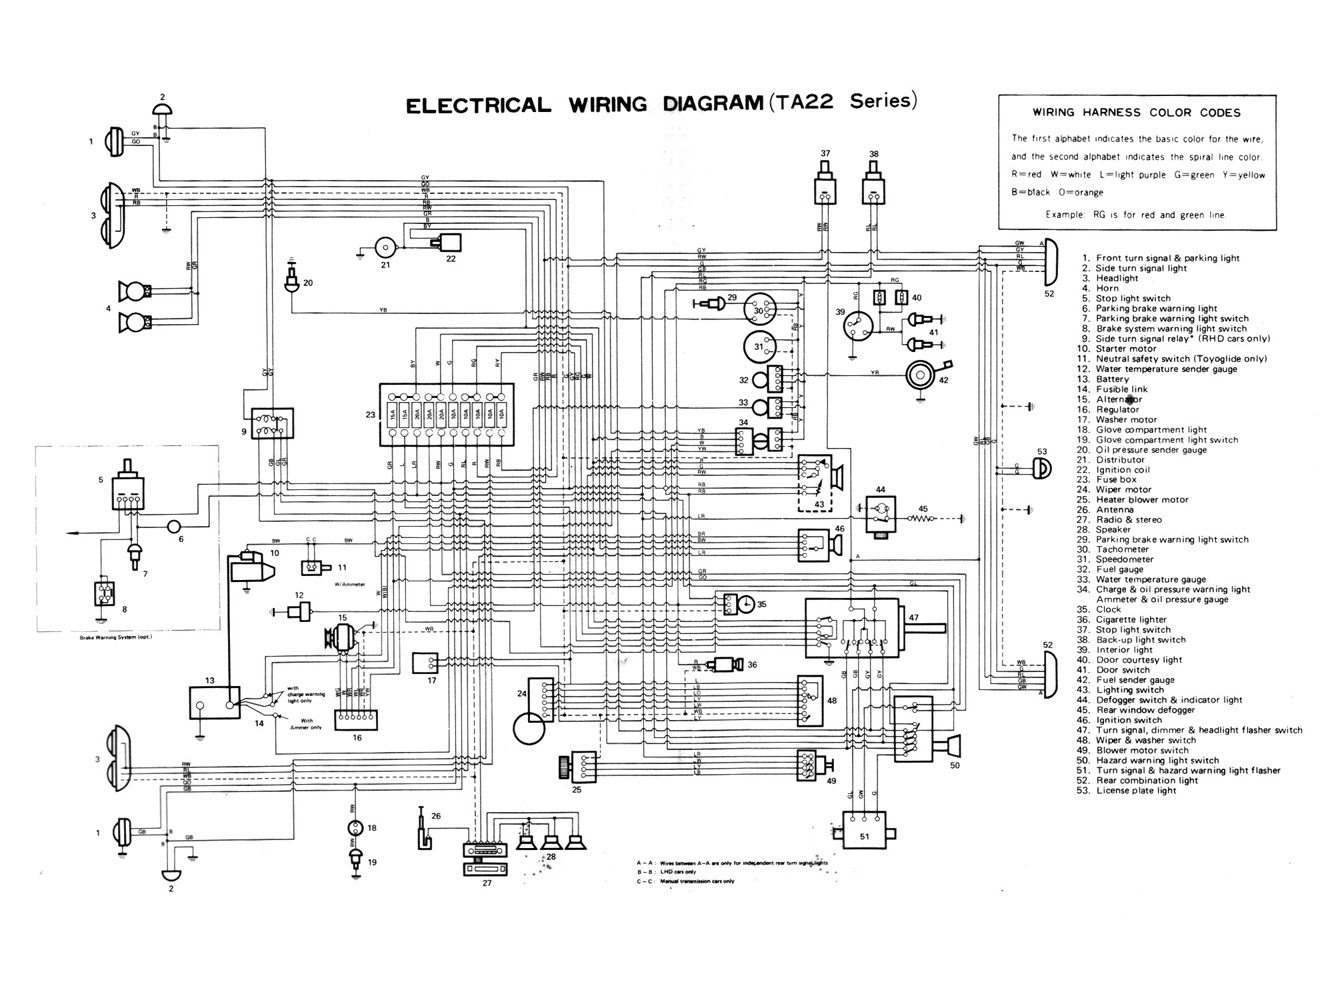 09 24 Electrical Wiring Diagram (TA22 Series) 2001 toyota celica wiring diagram 2001 toyota celica radio wiring wiring harness for 2000 toyota celica at panicattacktreatment.co